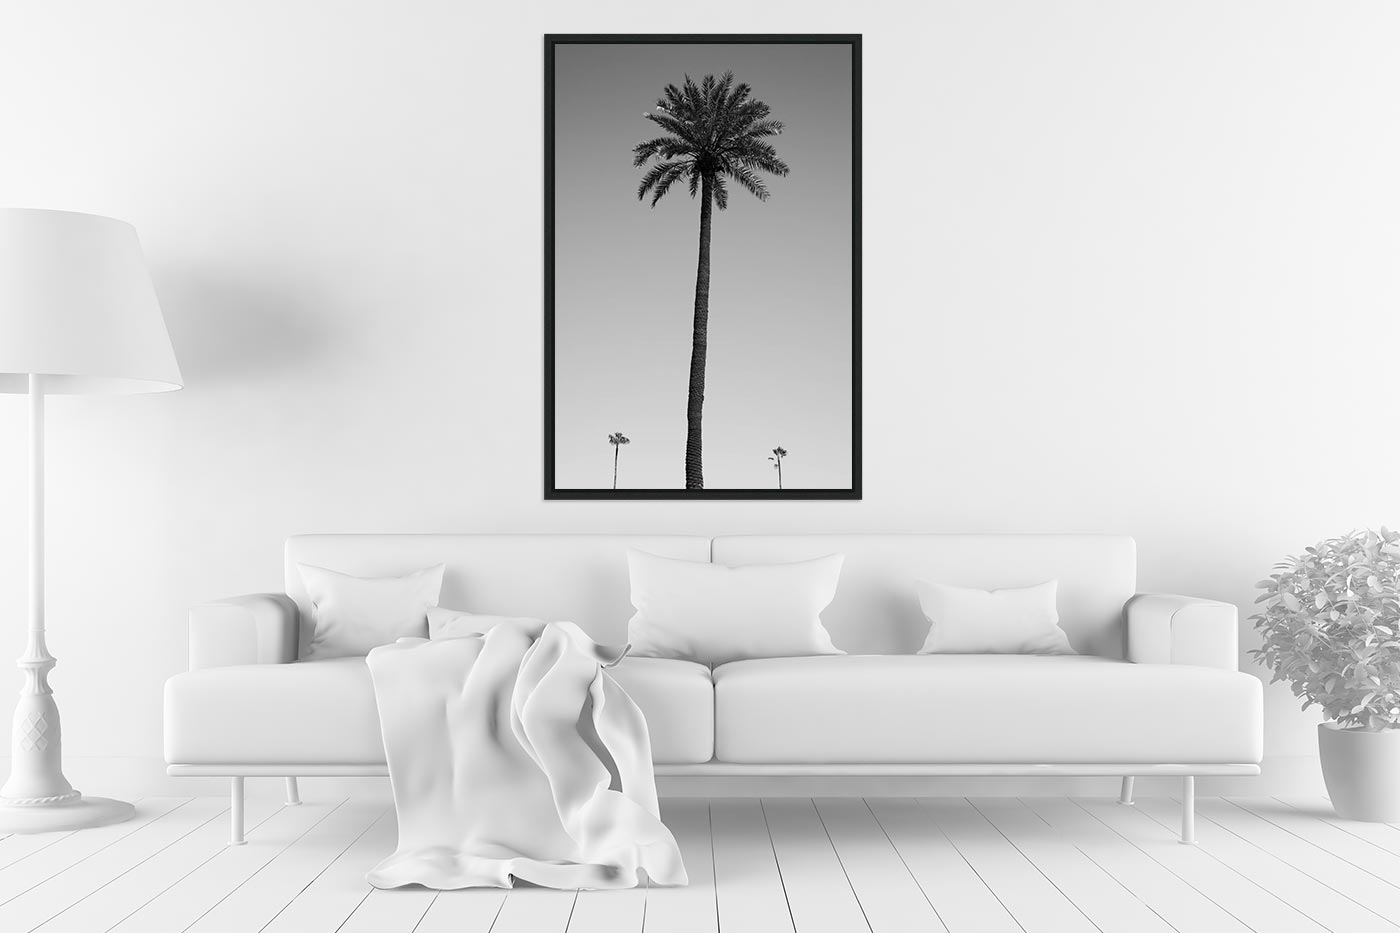 Caisse americaine 60x90 Three palm trees